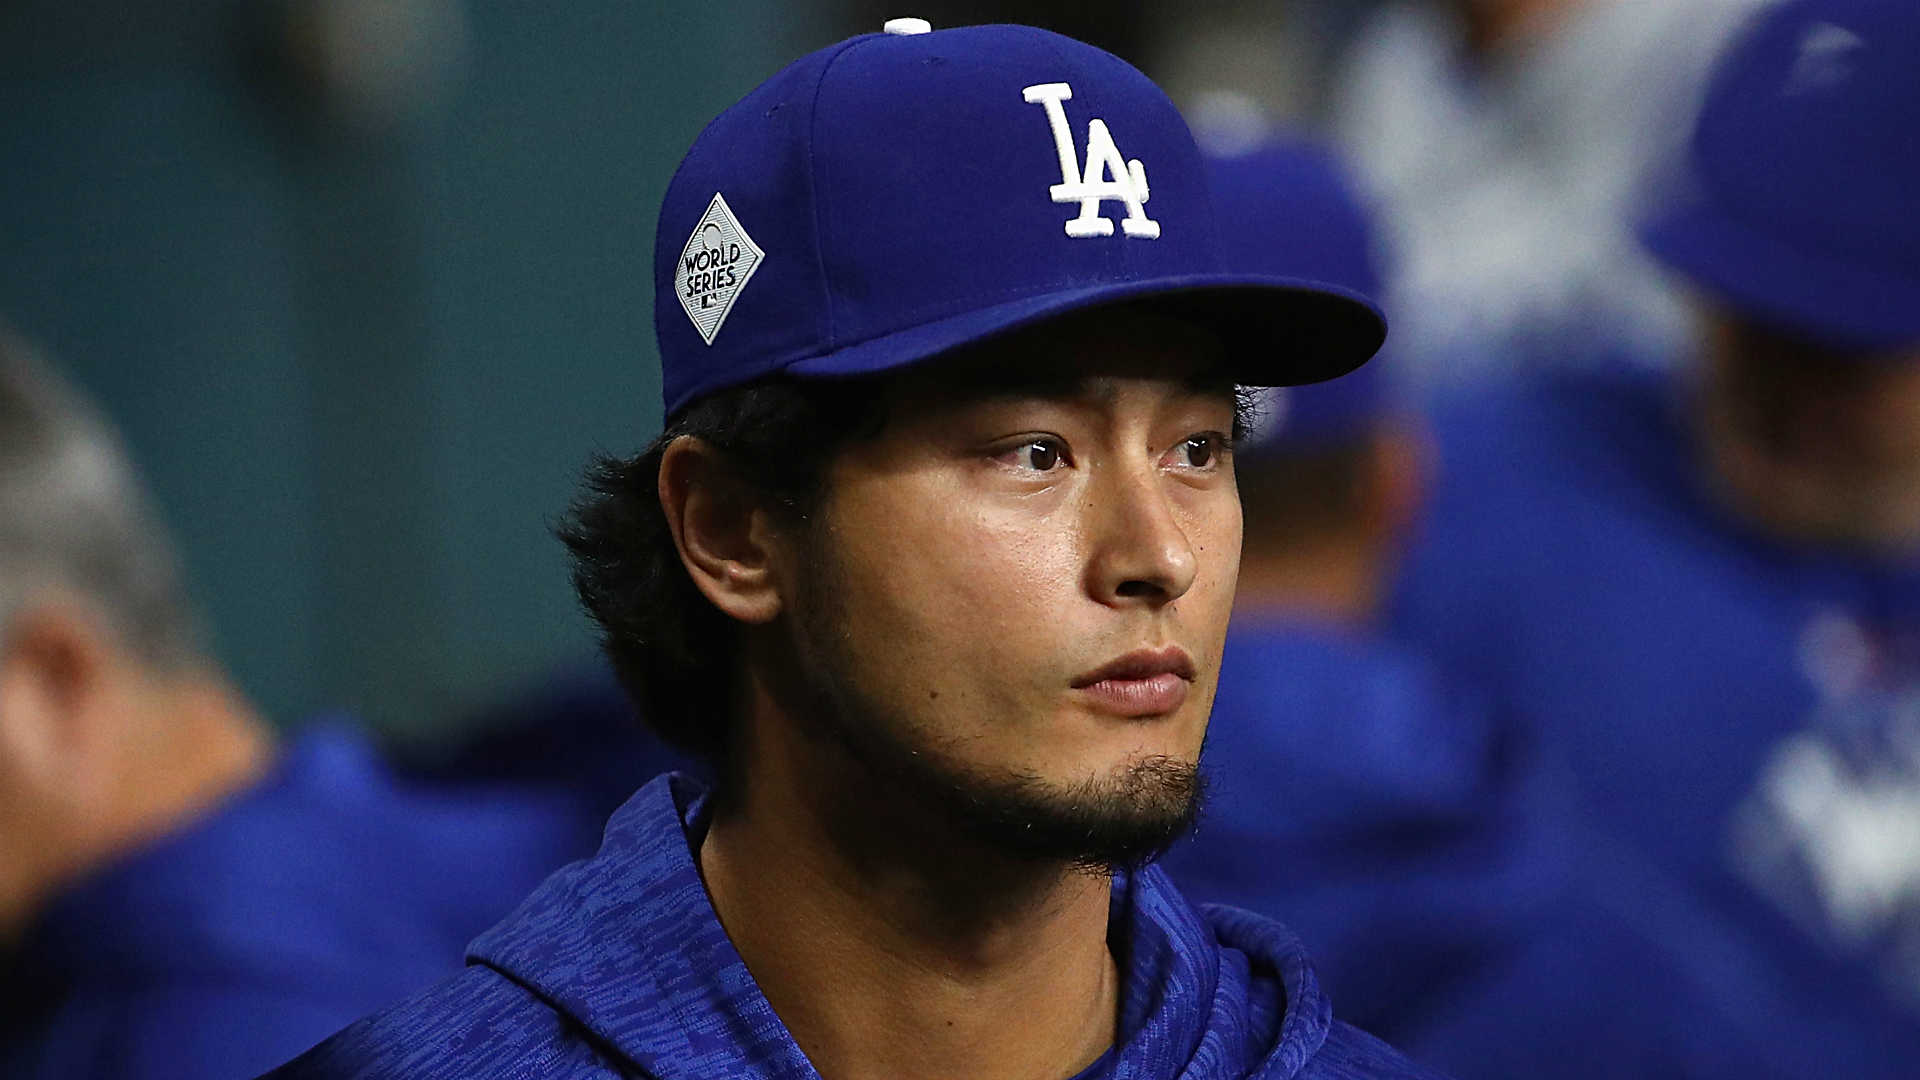 Yu Darvish inks 6-year, $126M deal with the Cubs